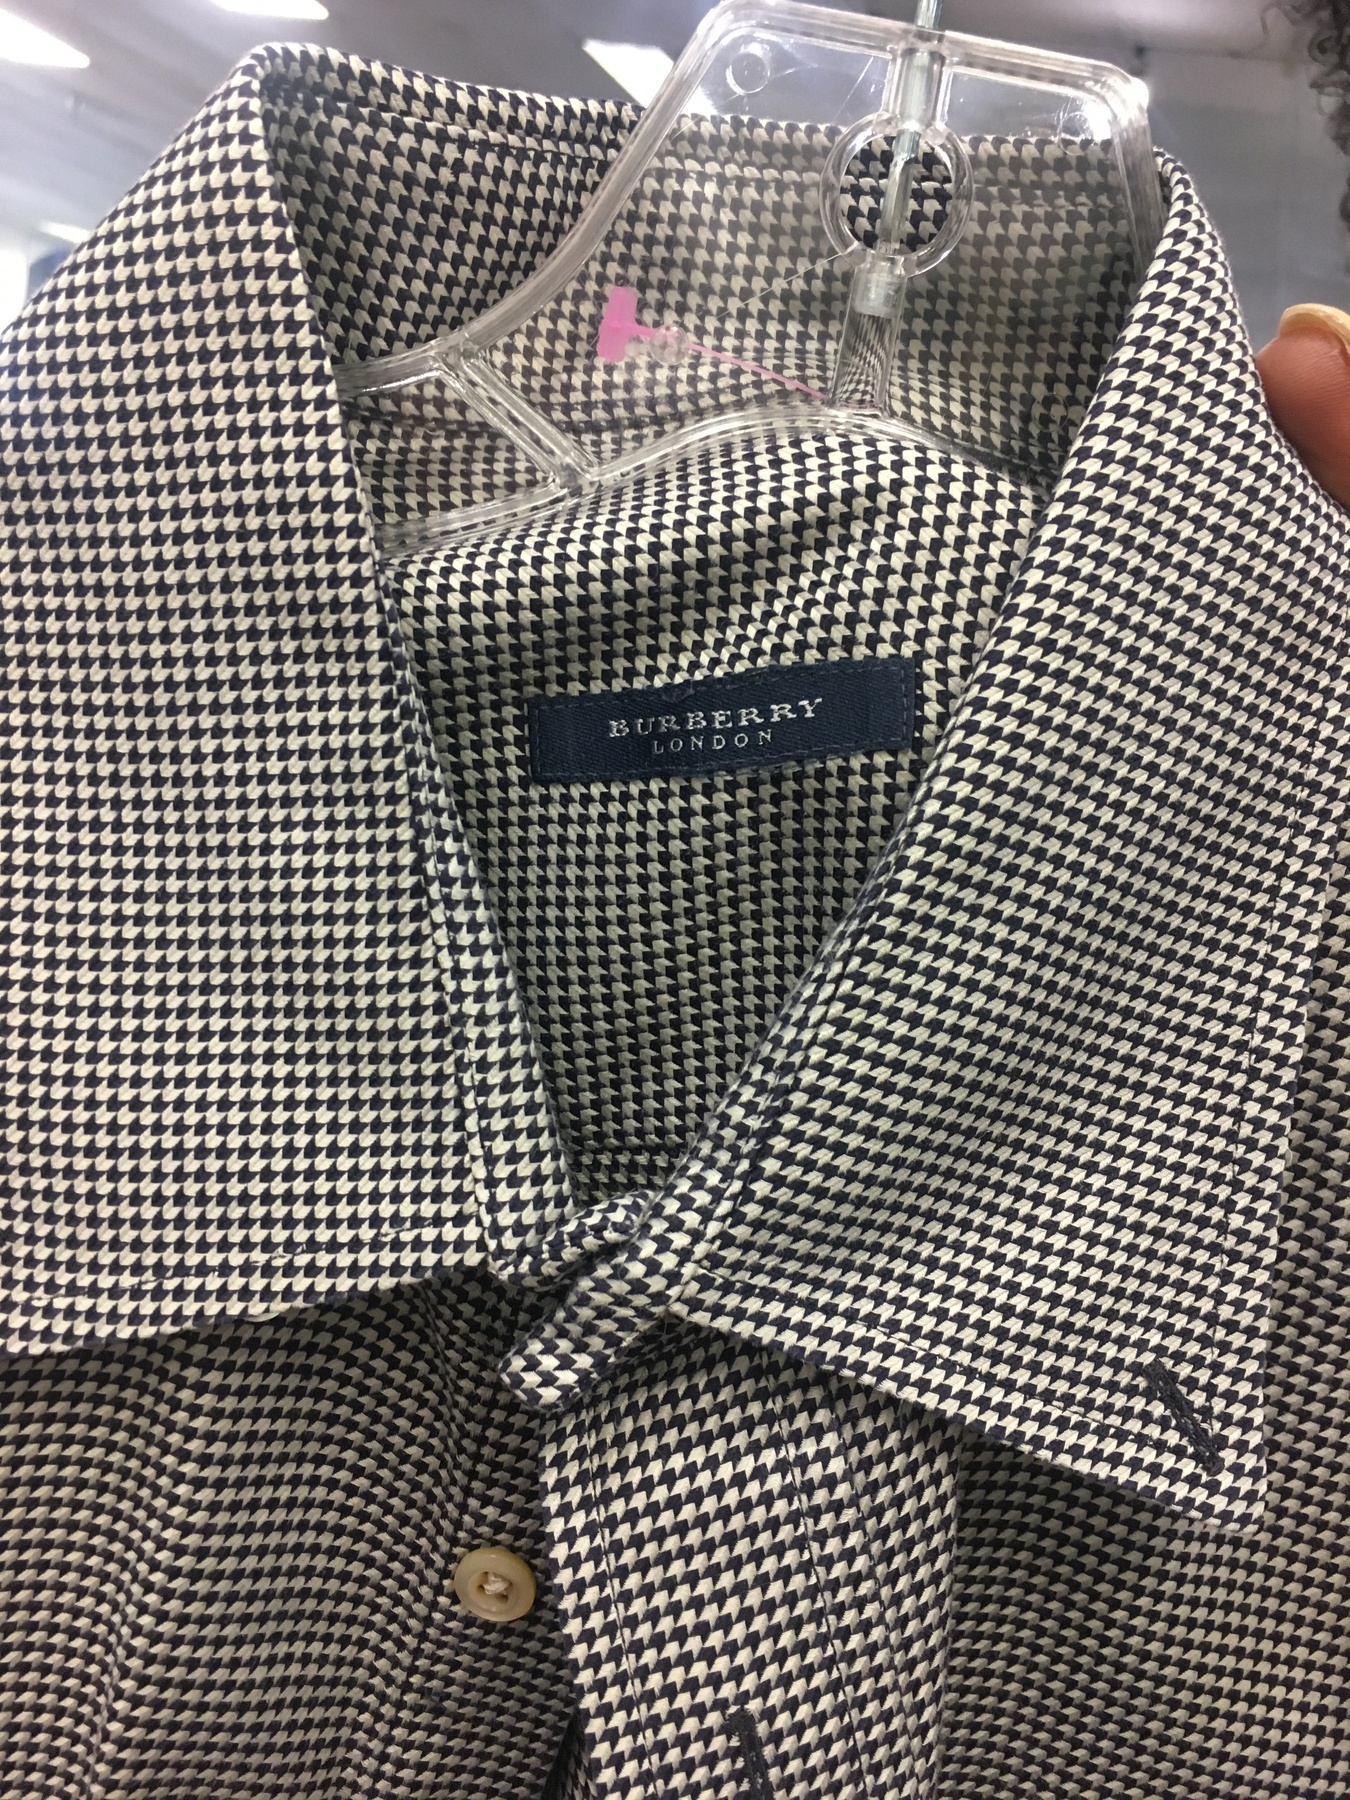 Burberry blouse found at Richmond Highway Goodwill